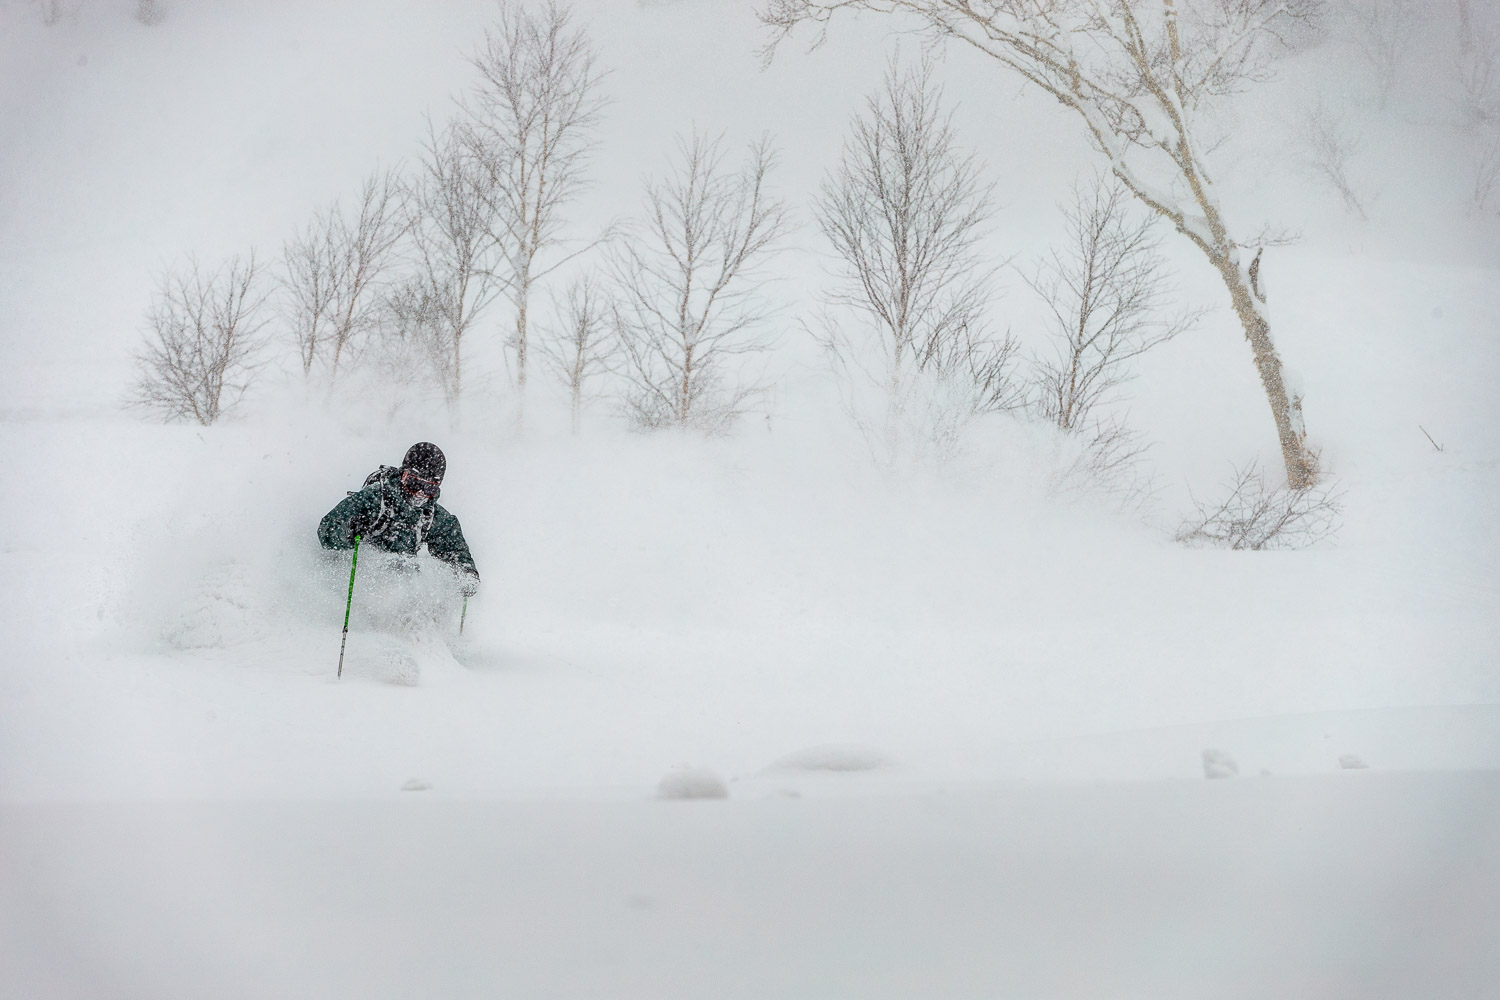 Tom Ritsch plundering pow with Shimamaki Snowcats.